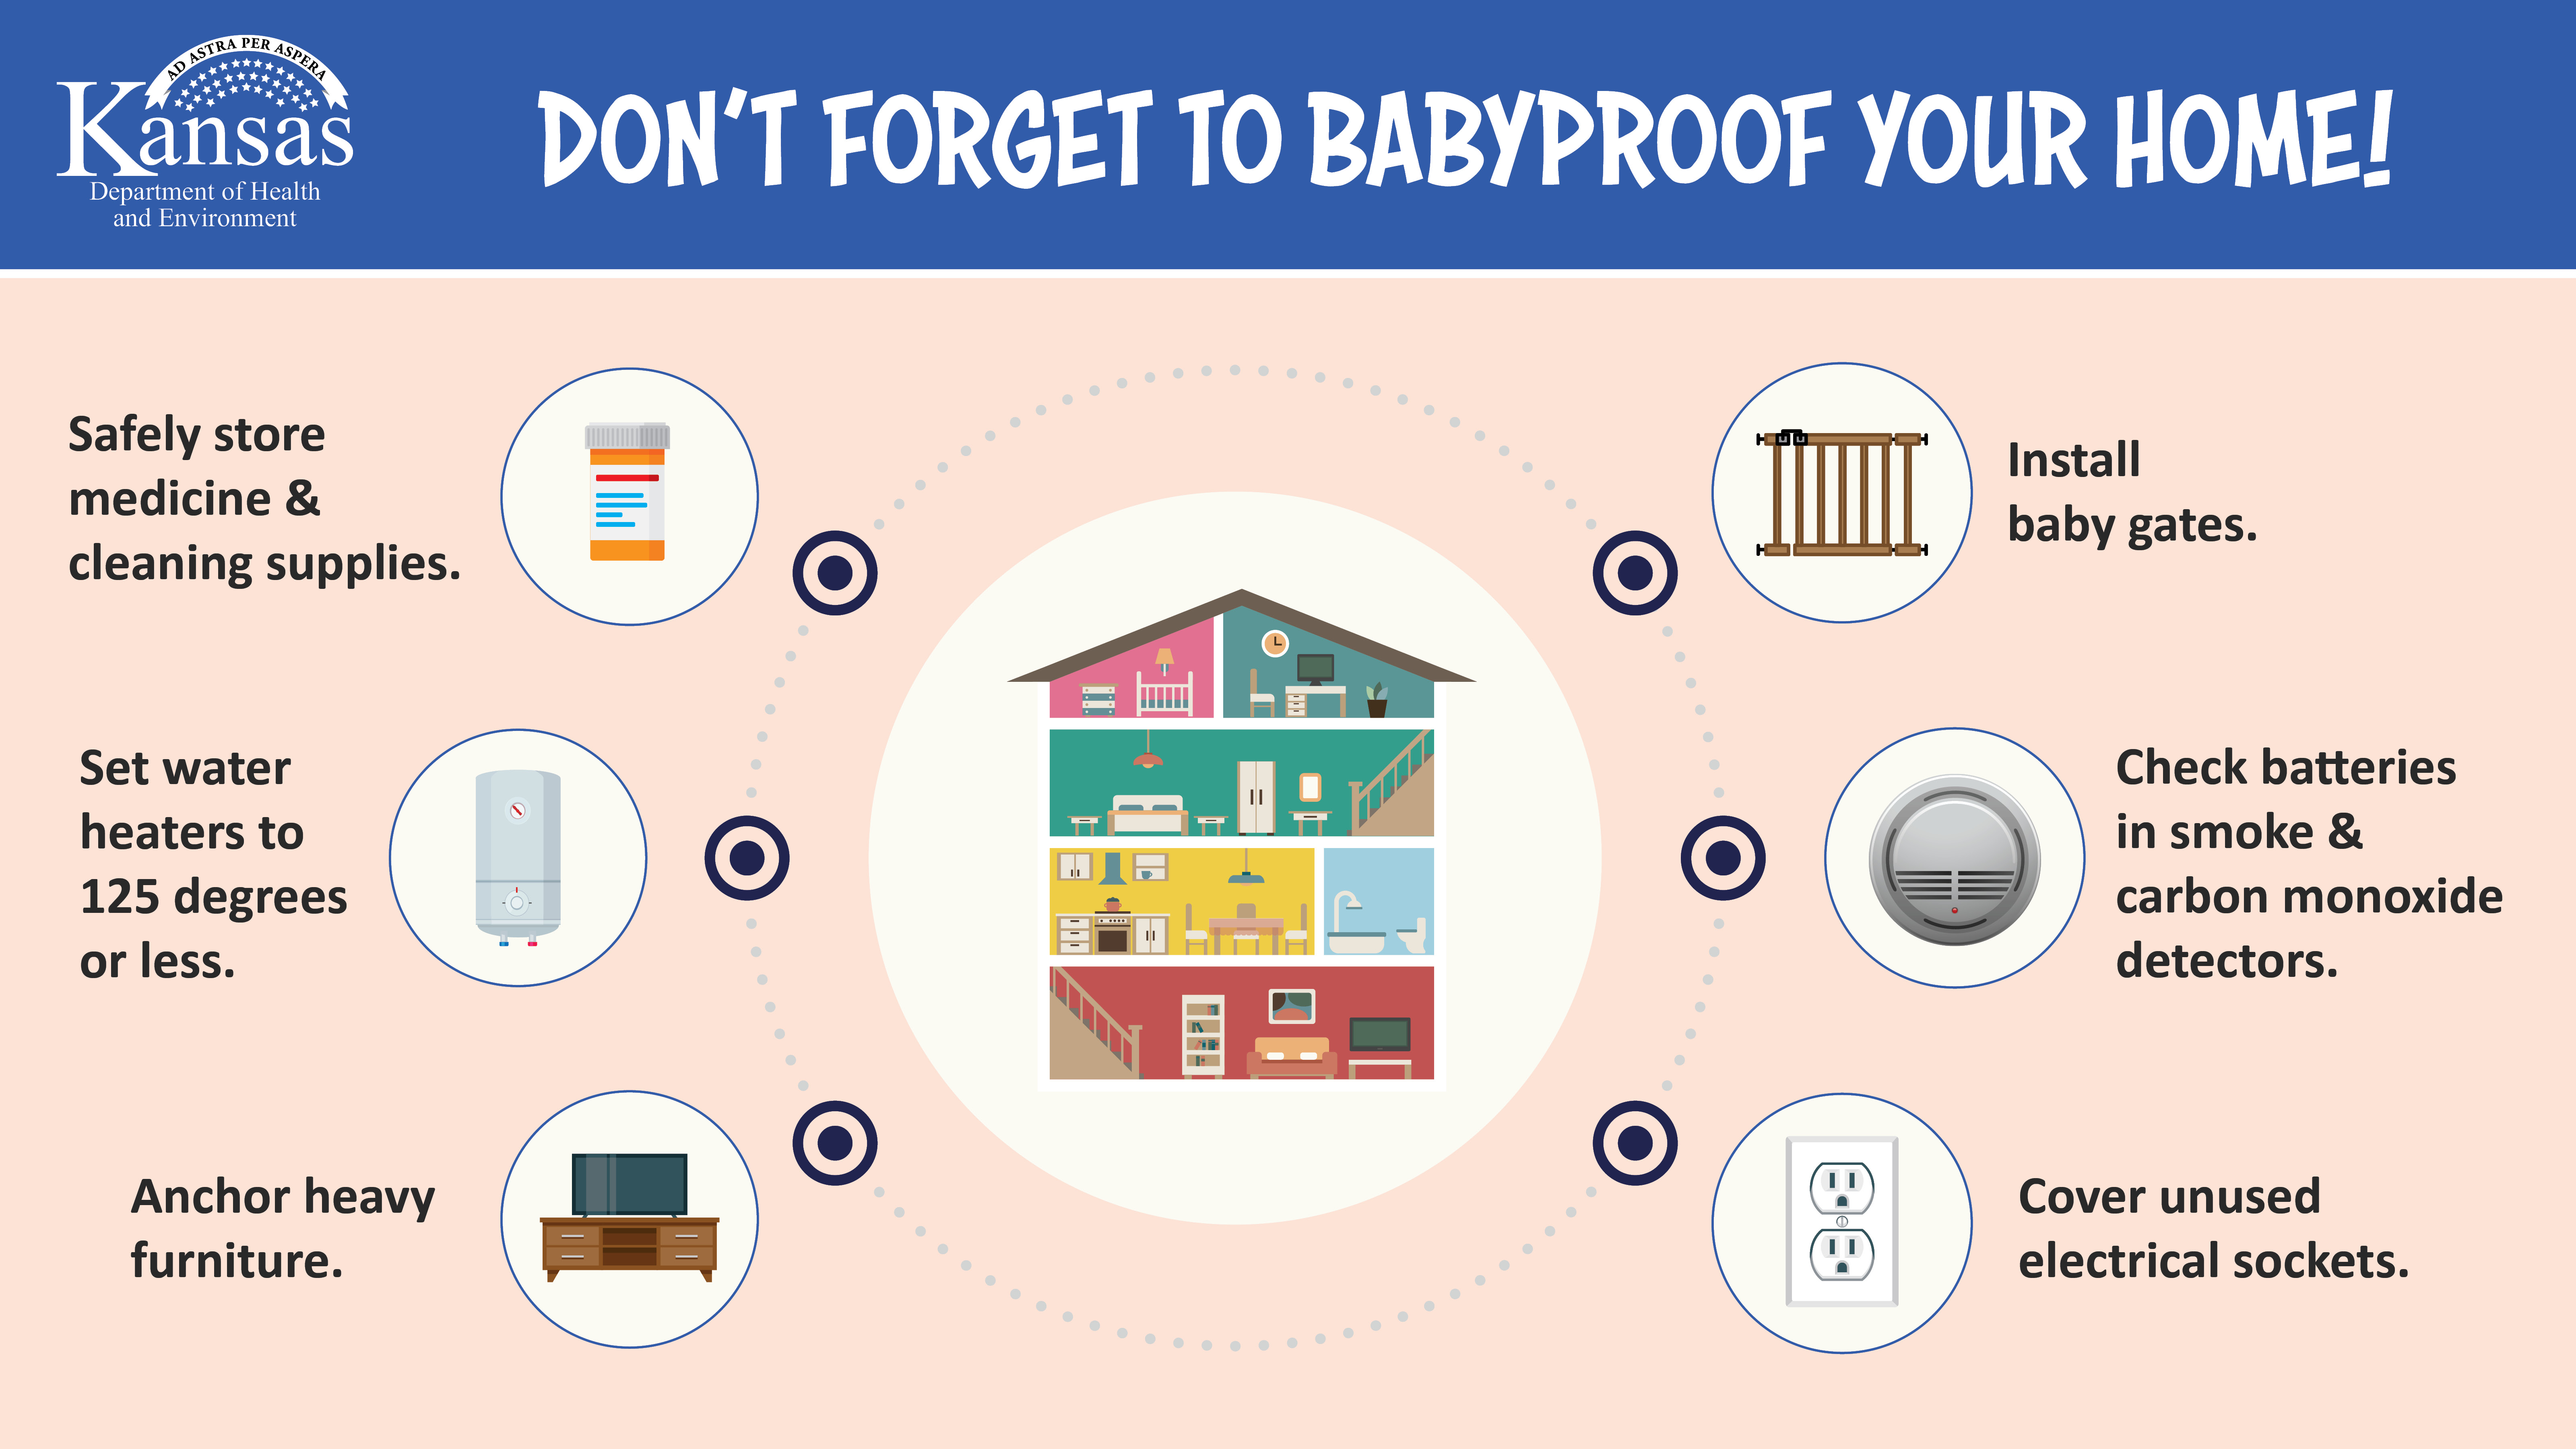 Baby Safety Month Action Alert